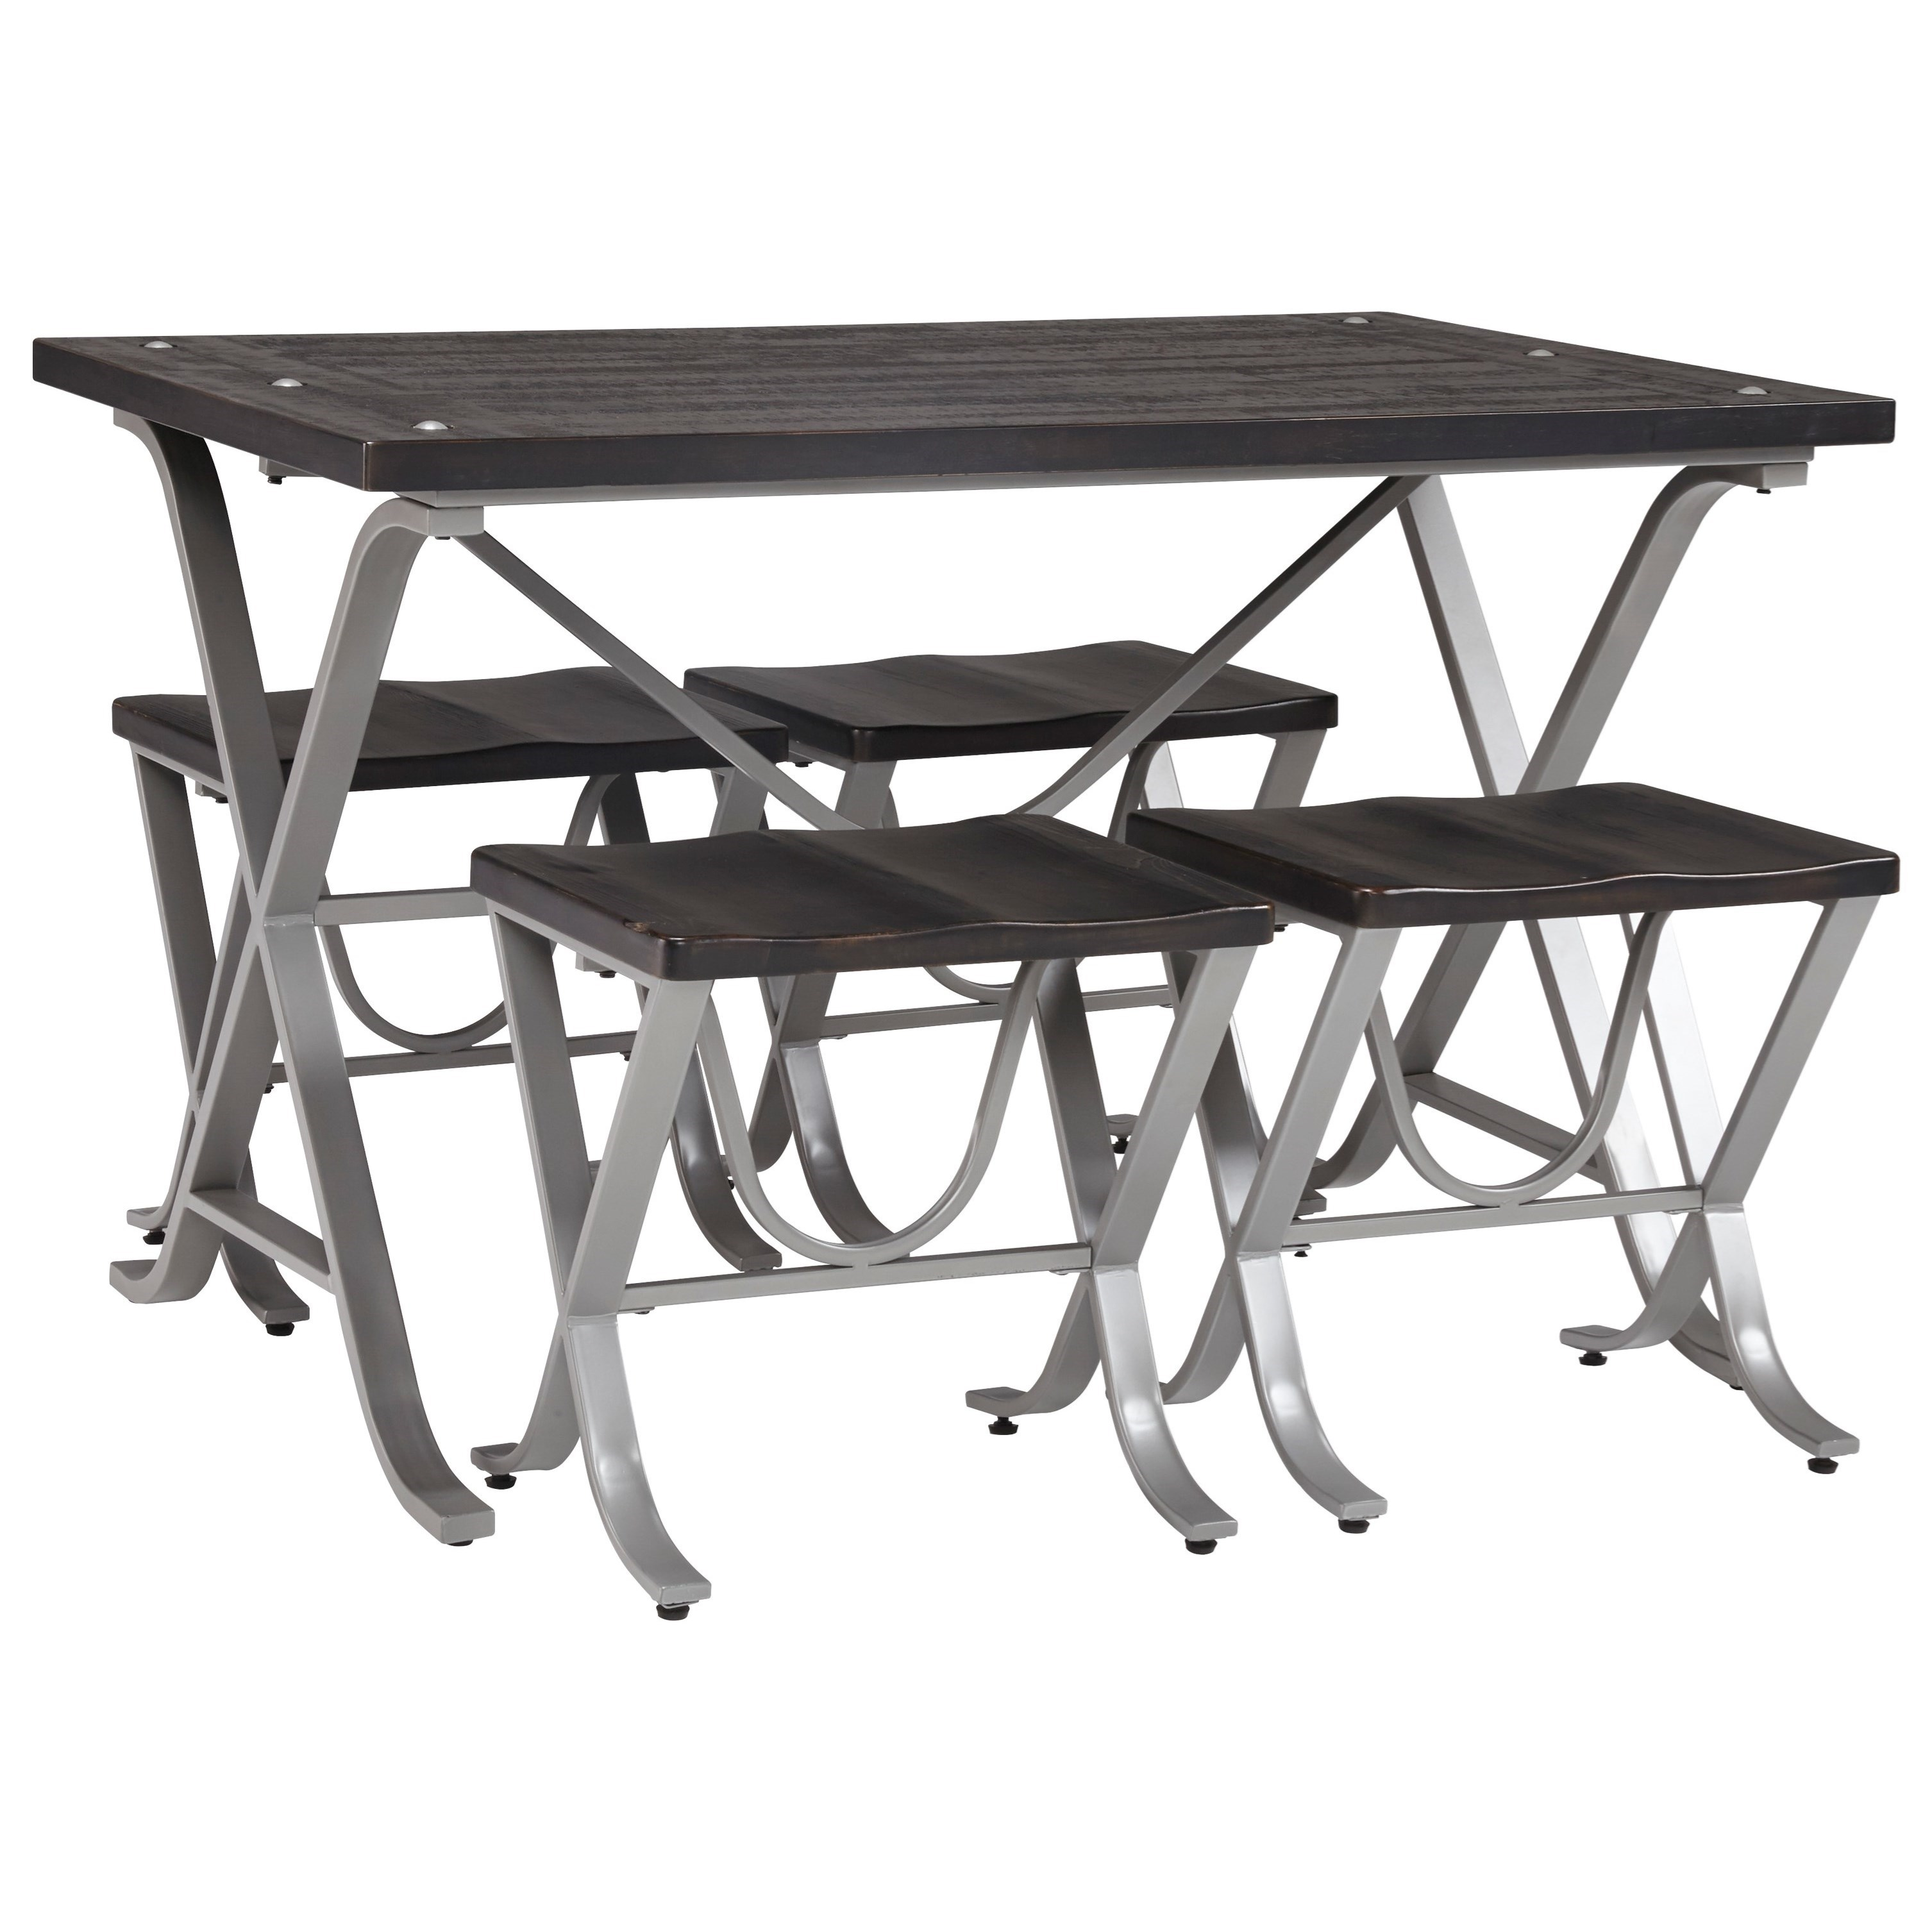 Signature Design by Ashley Elistree 5-Piece Rectangular Dining Room Table Set - Item Number: D321-225